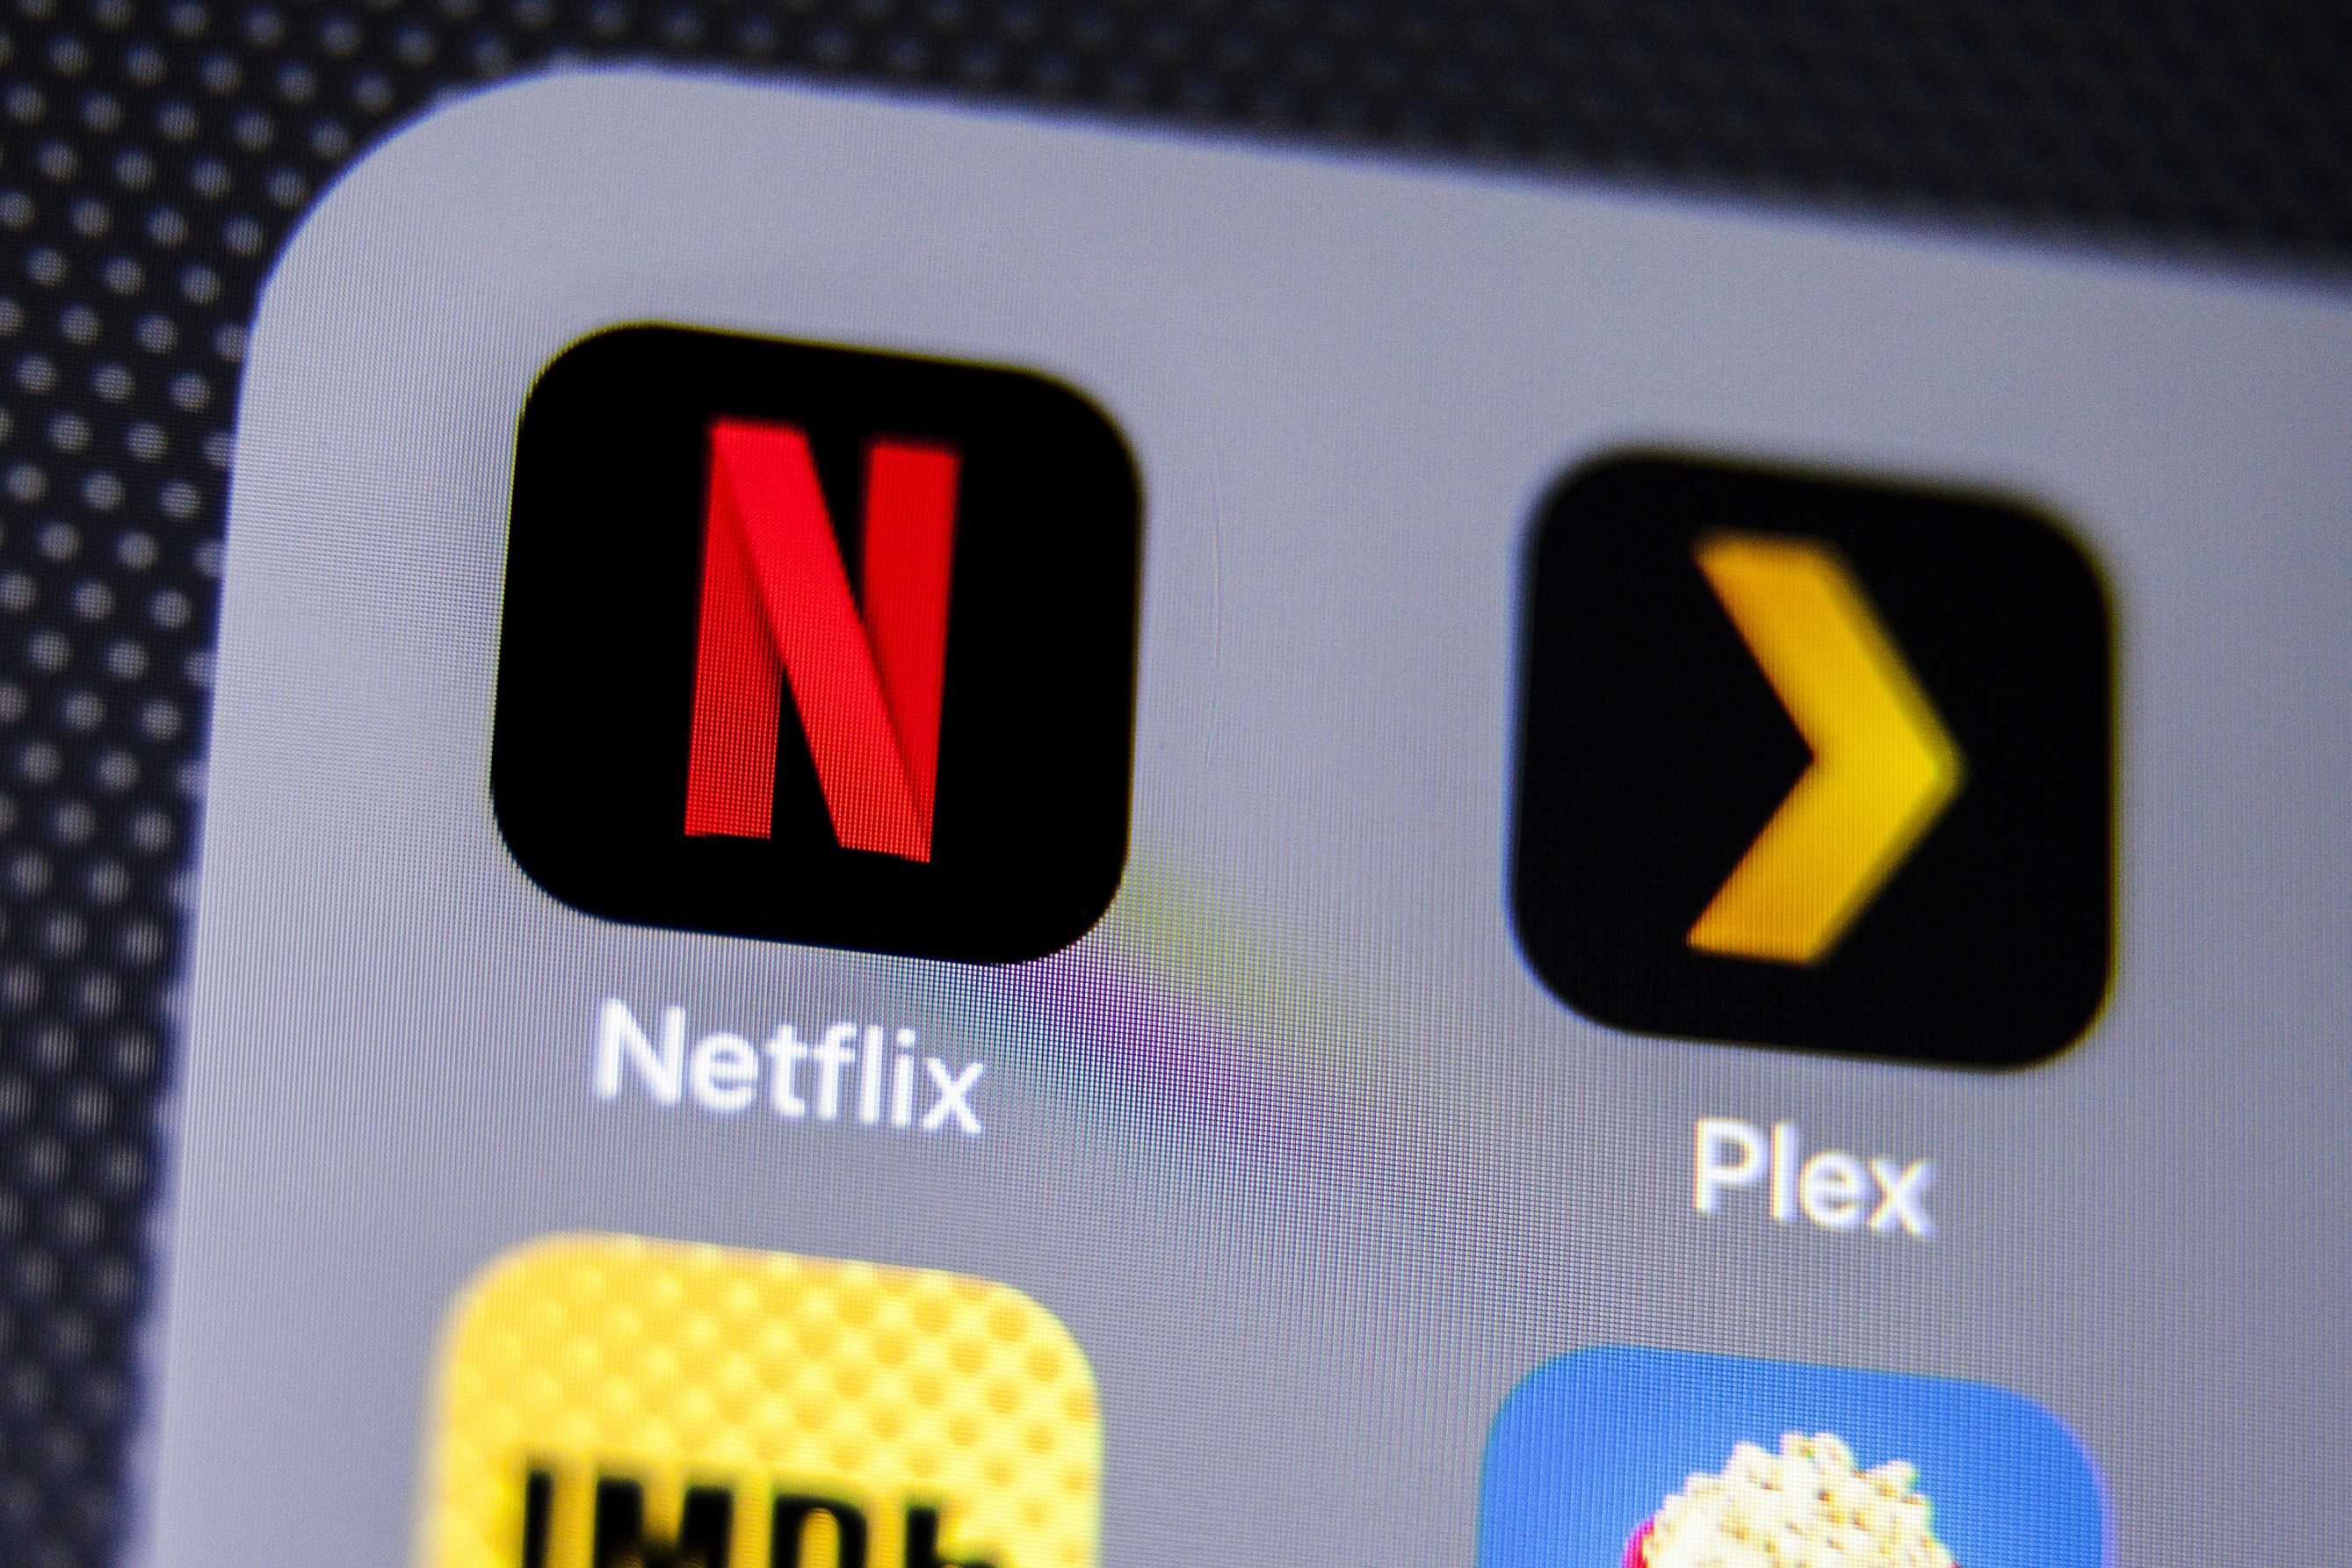 Police department warns of Netflix phishing scam